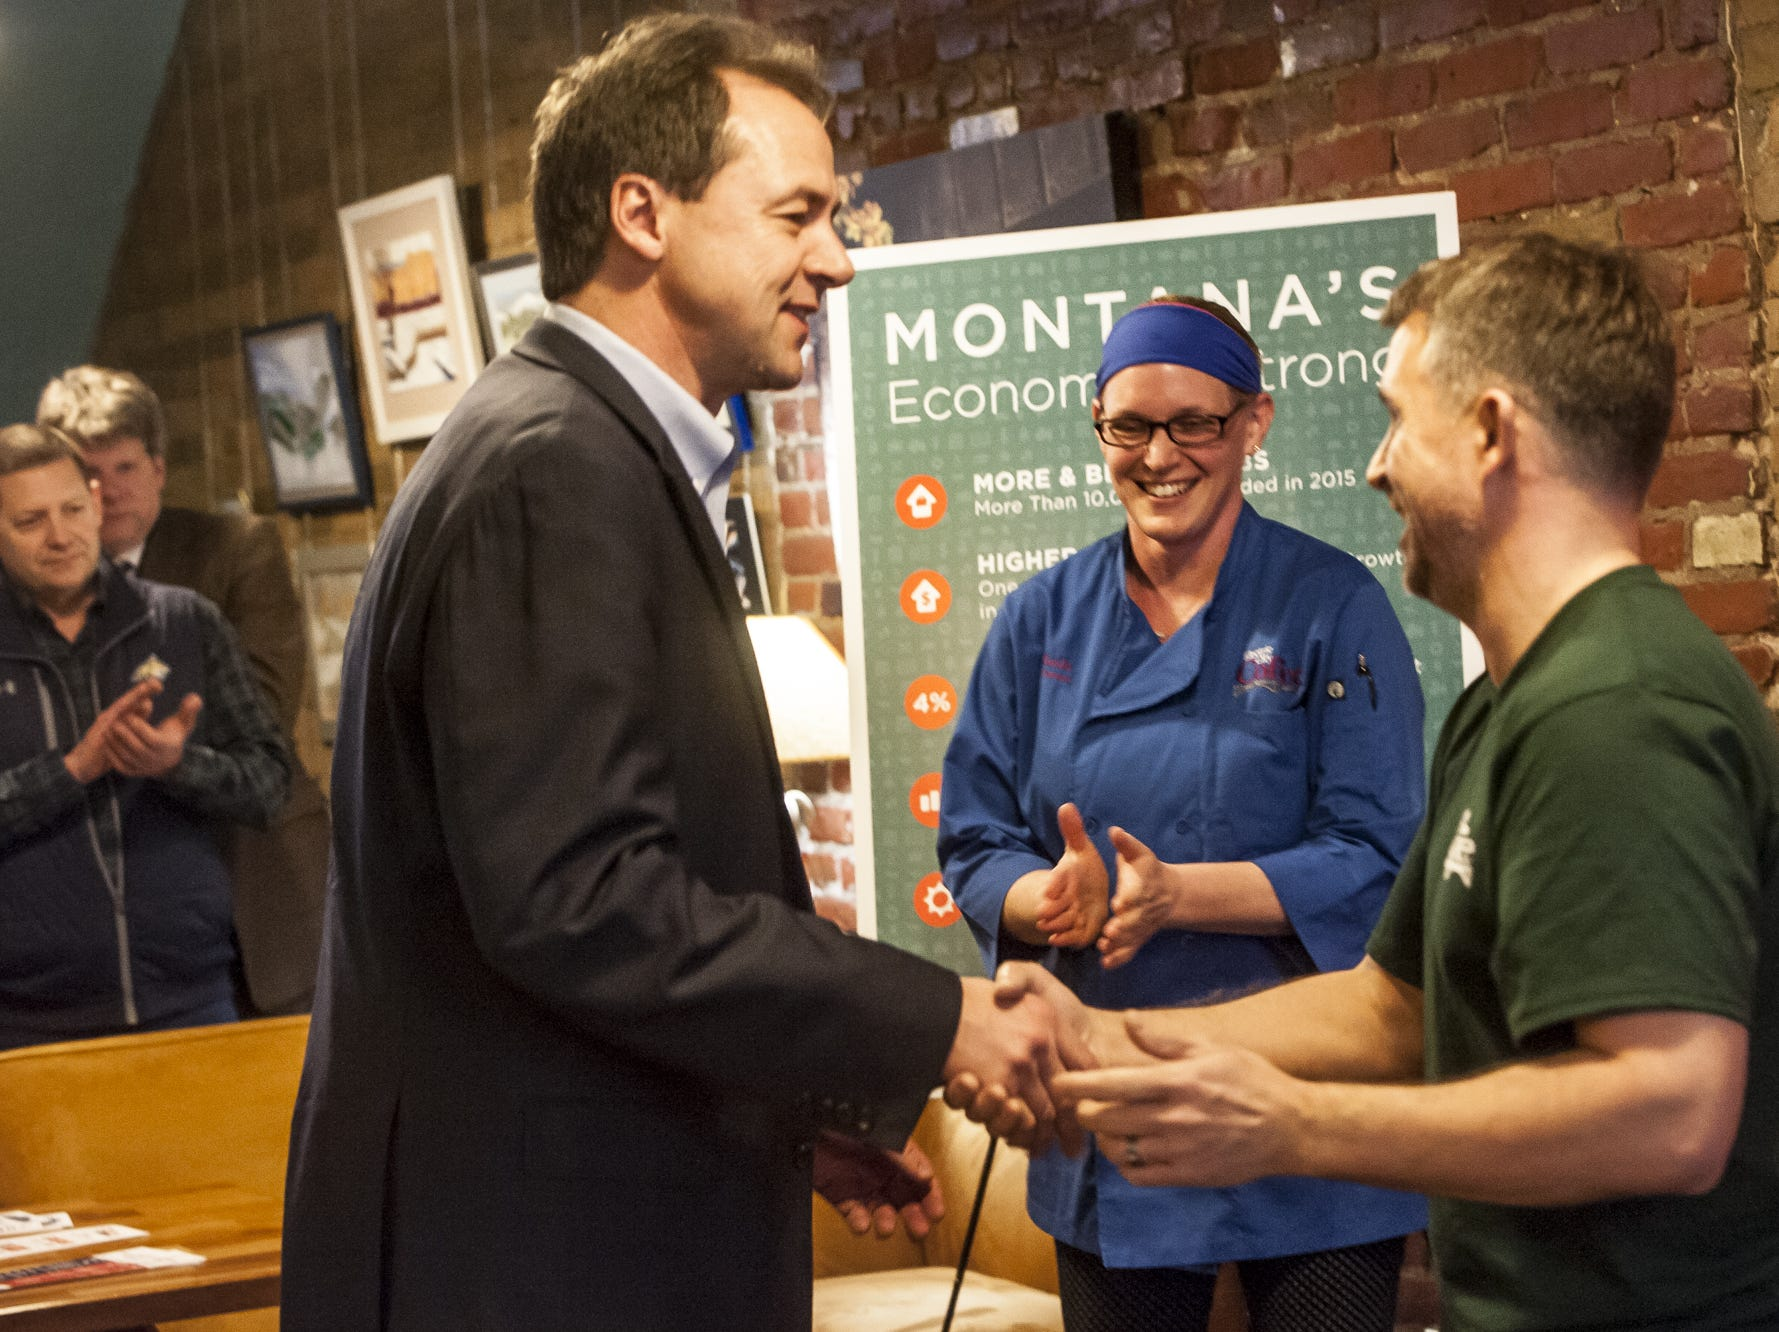 Governor Steve Bullock greets Electric City Coffee owners Thad and Heide Reiste during a brief celebration of Montana's small business success before First Friday events March 4, 2016.